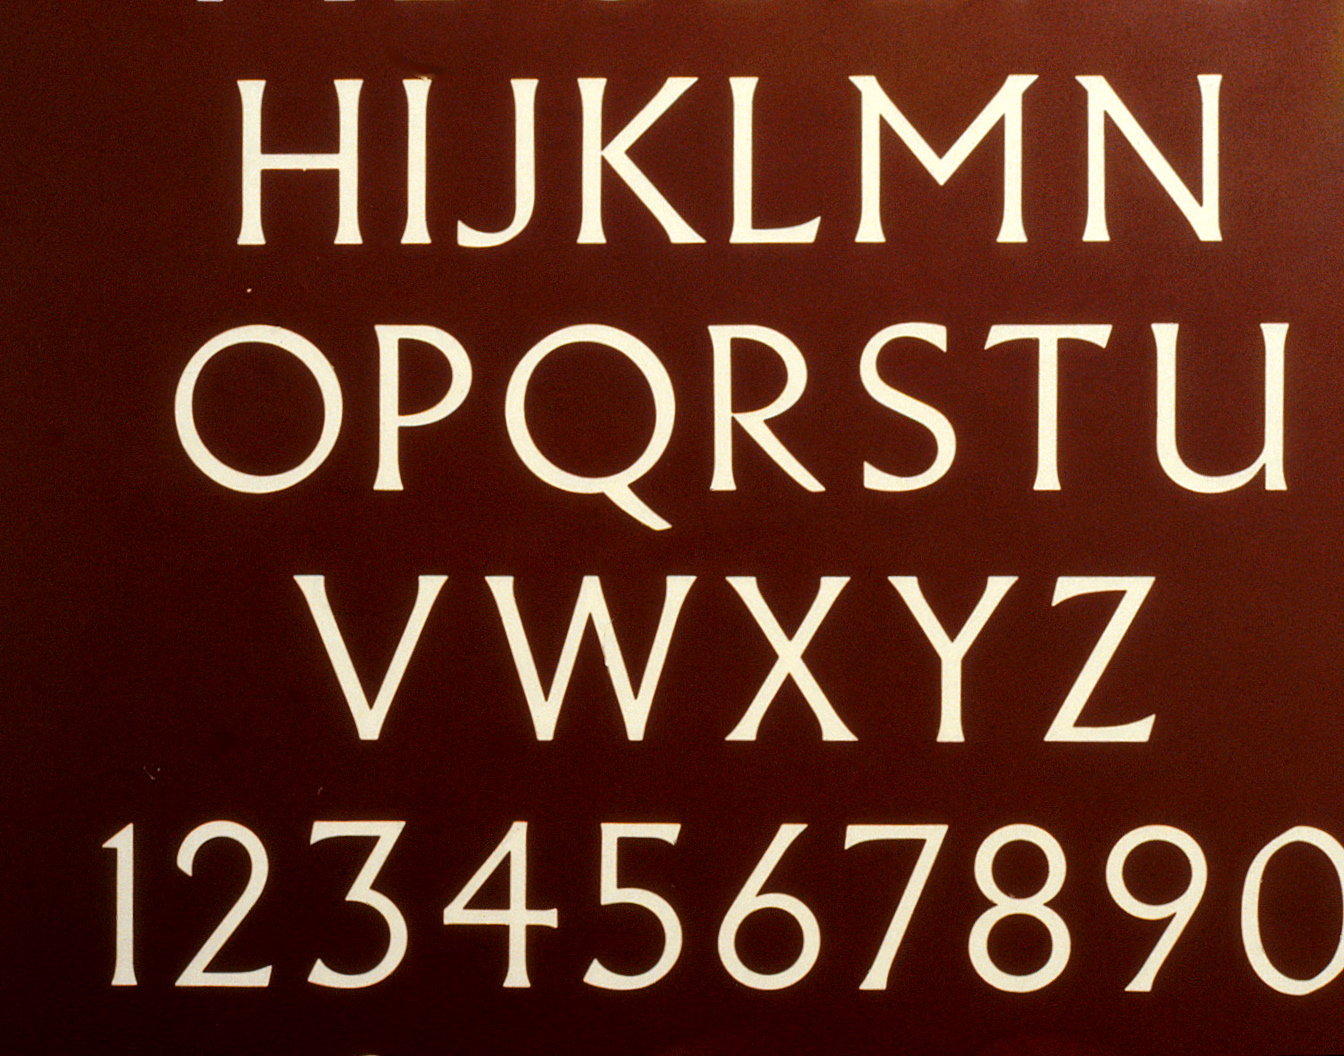 Letters and numbers using the Alburtus font.